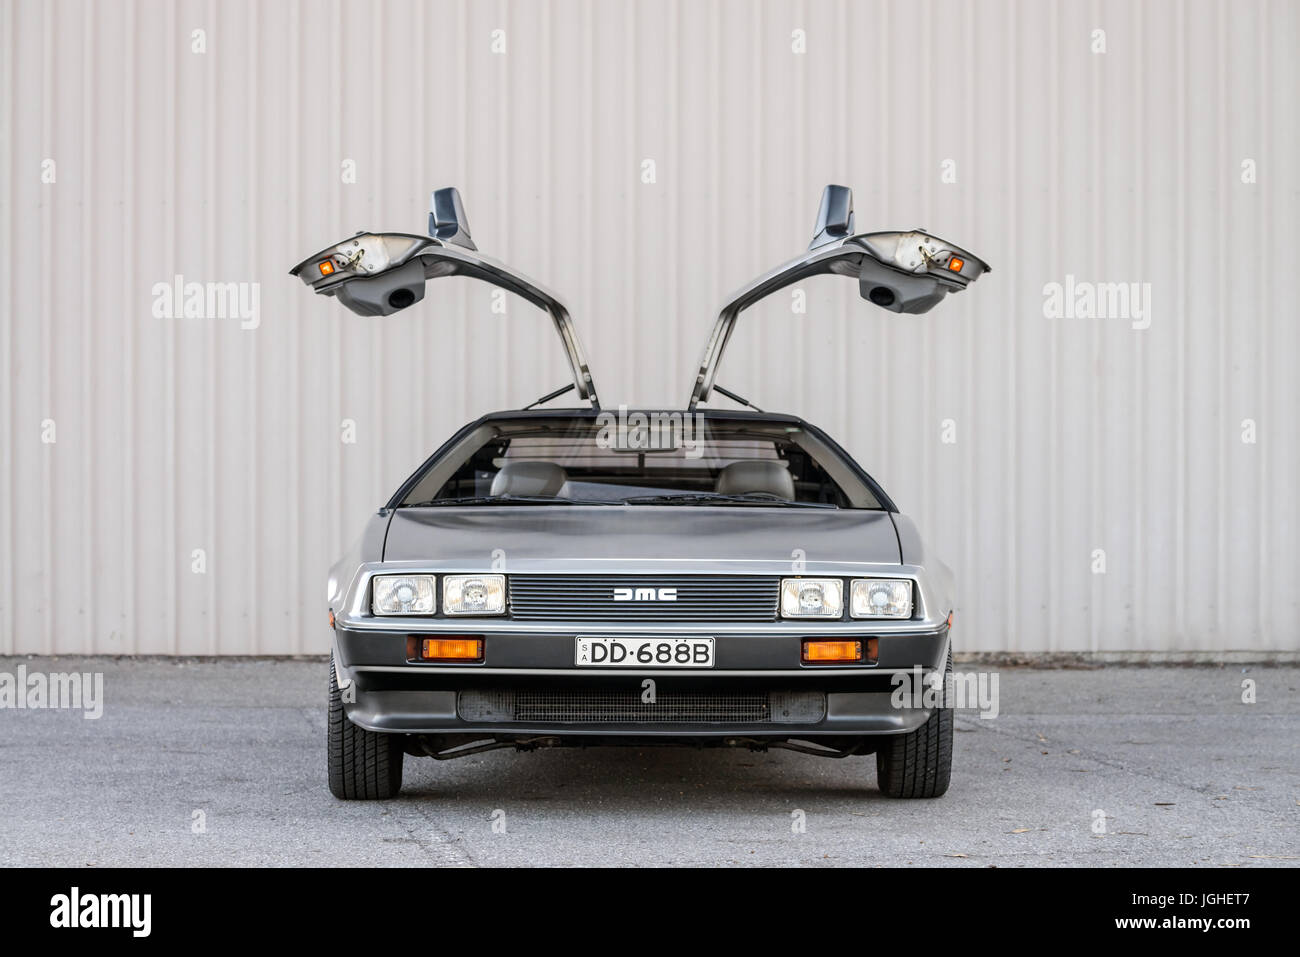 Adelaide, Australia - September 7, 2013: DeLorean DMC-12 car with opened doors parked on street near shed - Stock Image